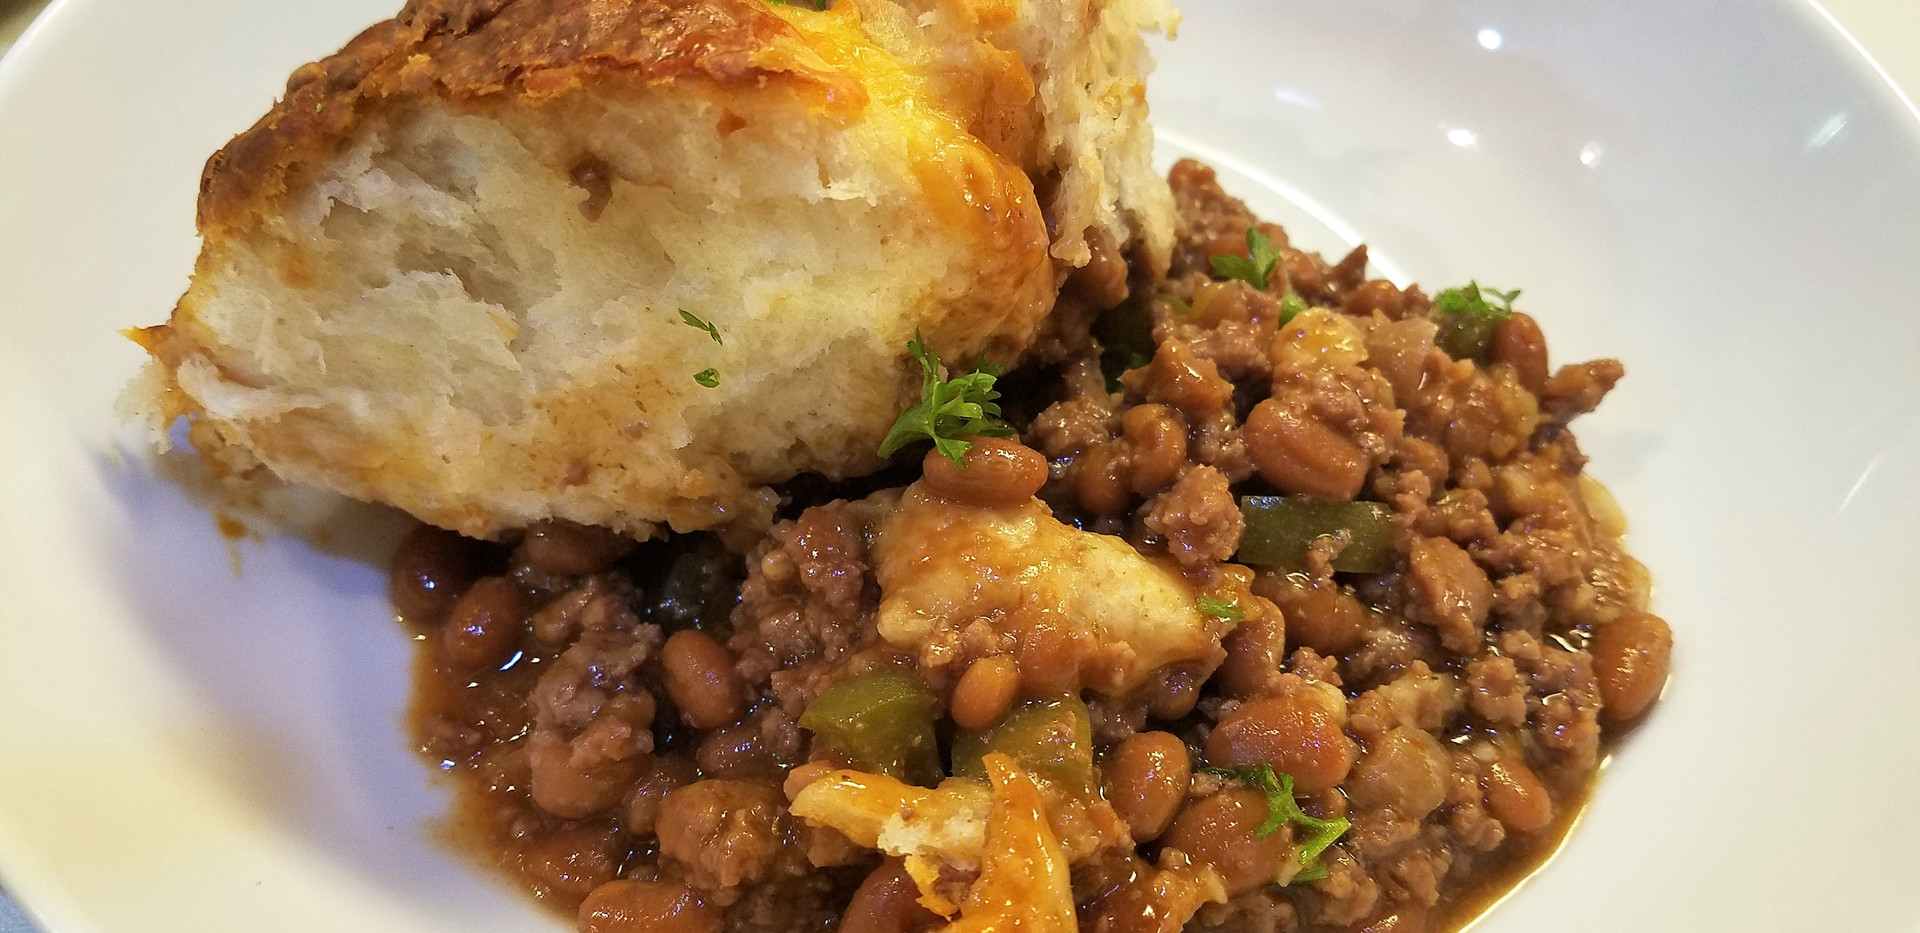 Beef Bean and Biscuit Bake